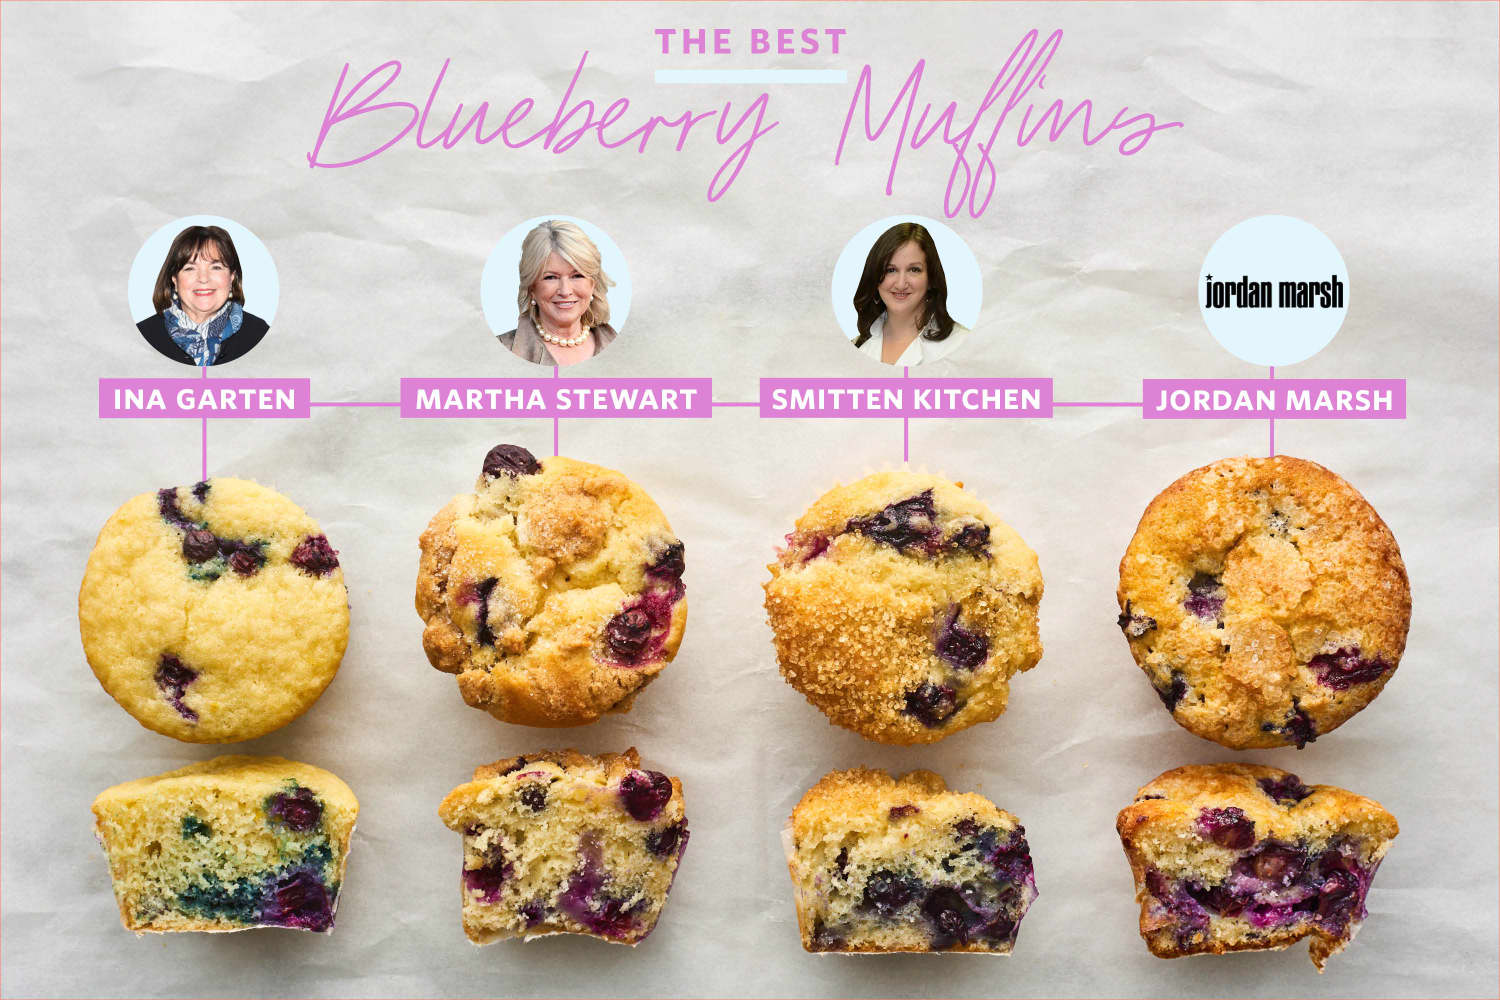 We Tested 4 Famous Blueberry Muffins and Found a Clear Winner